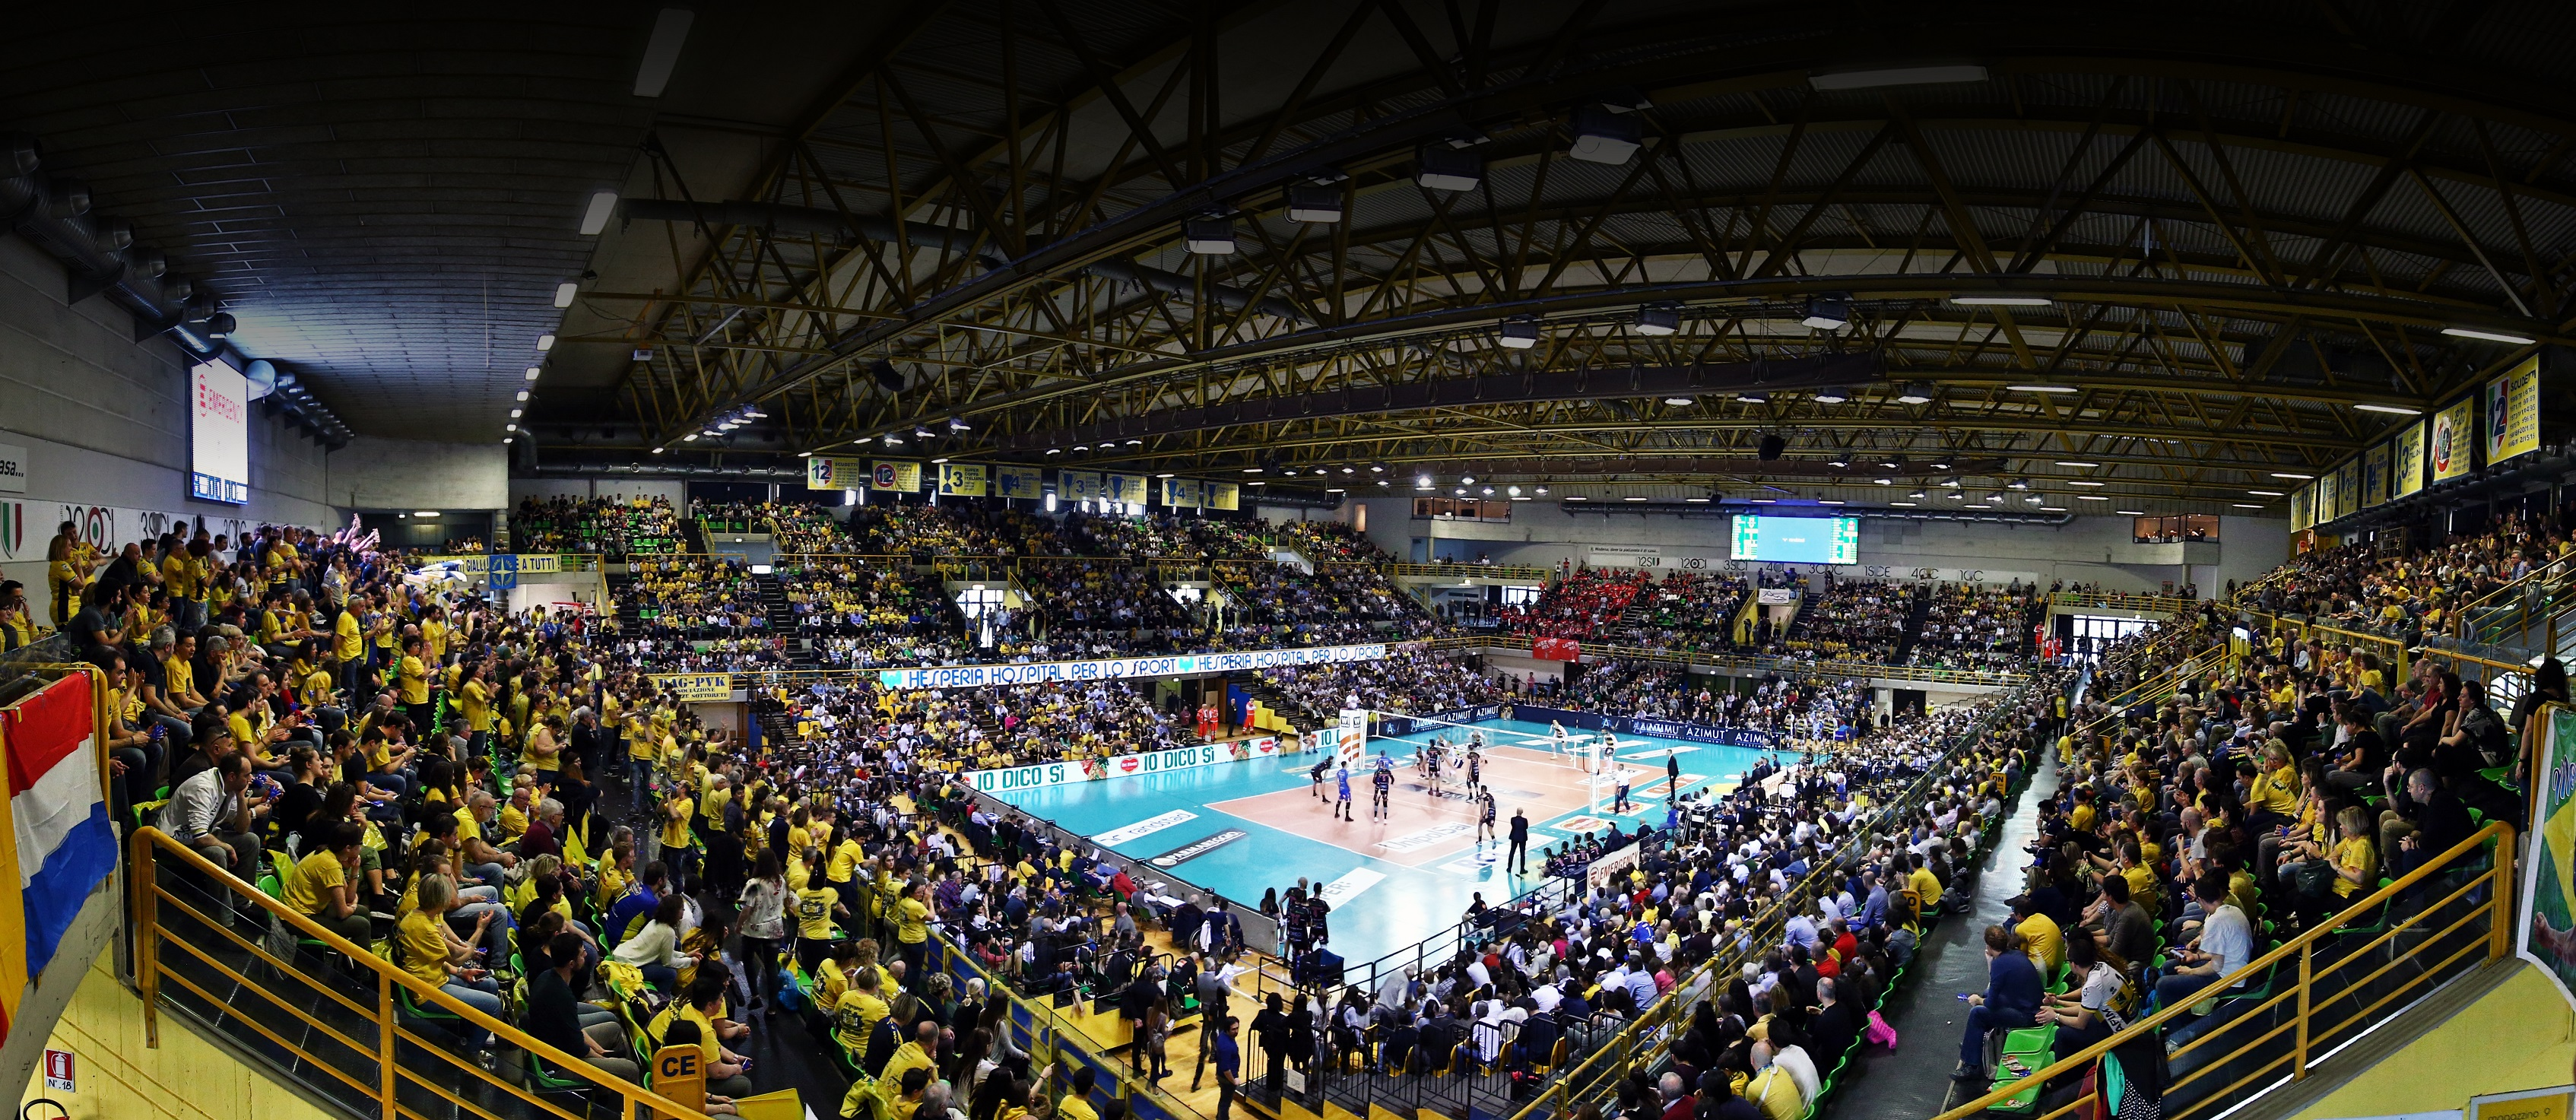 Modena Volley, l'ingresso dei gialloblù in un PalaPanini sold out